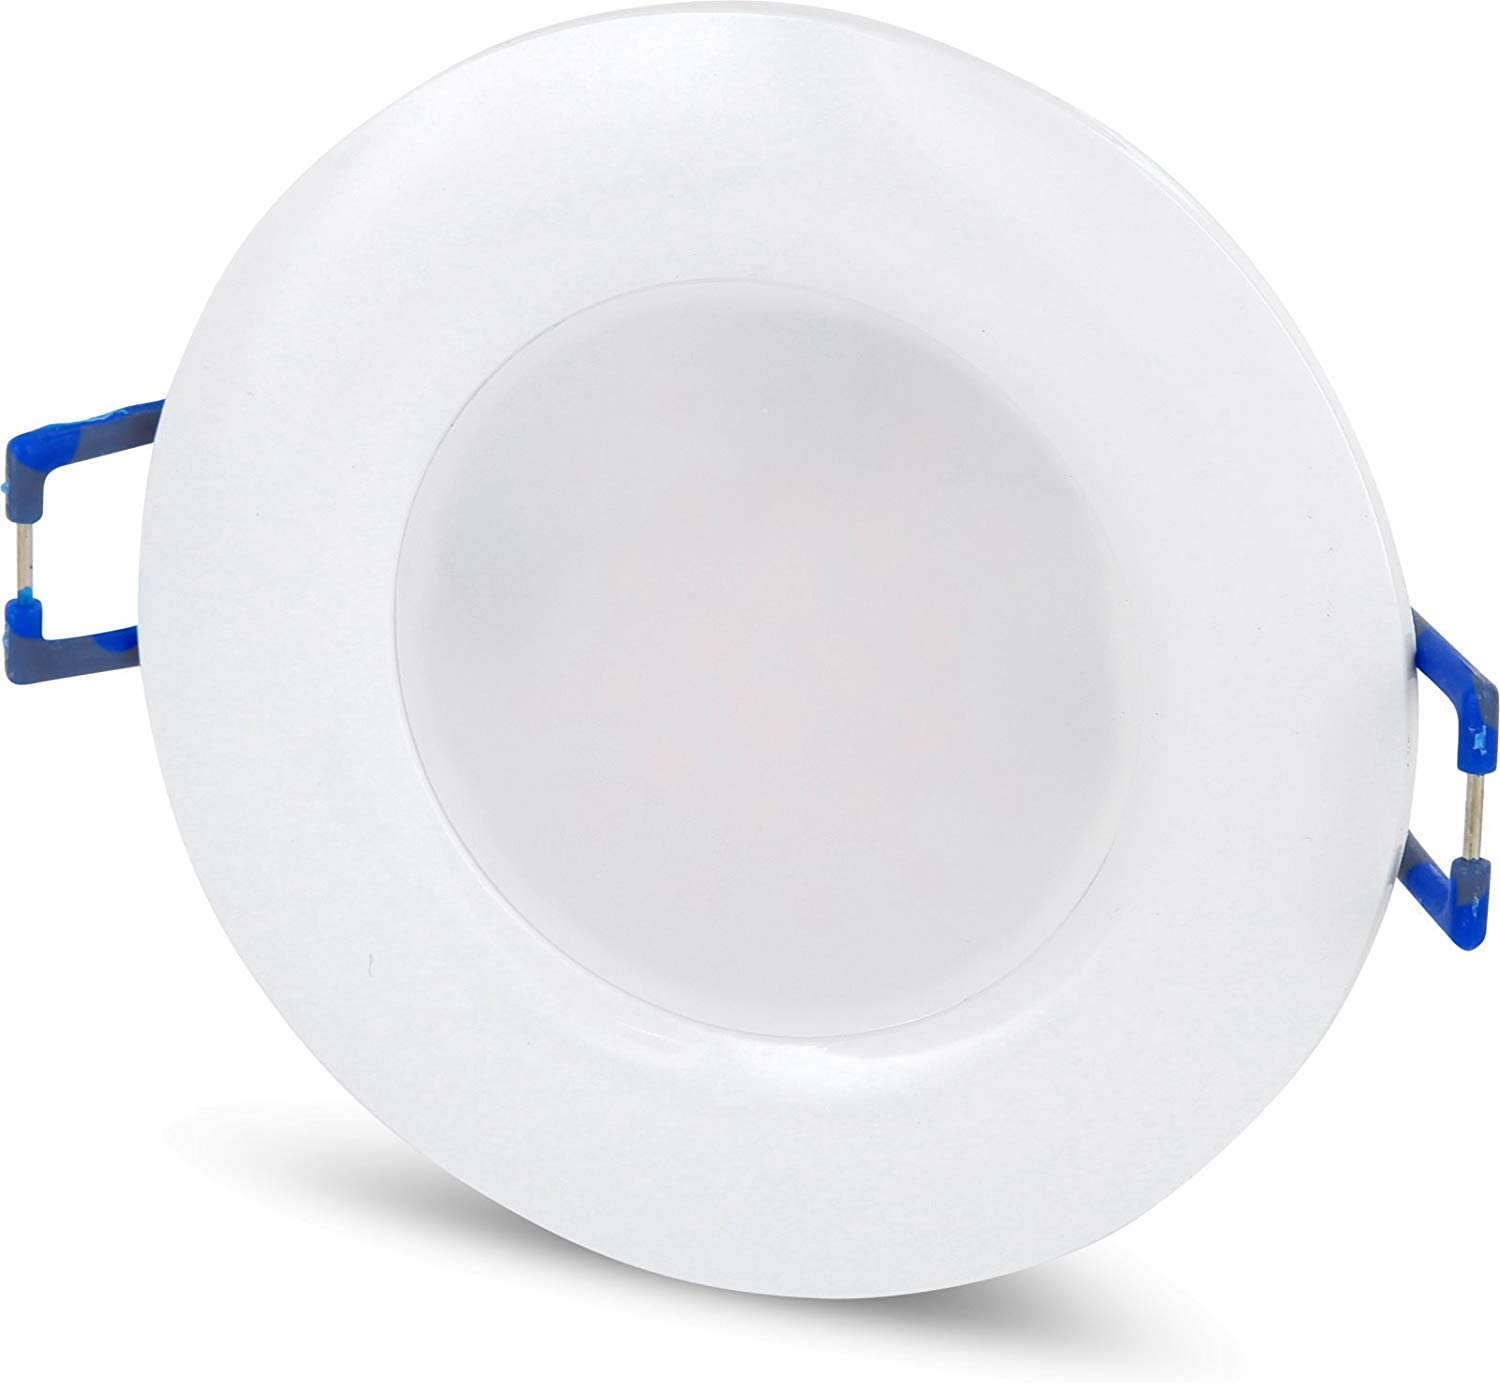 Spot LED IP18 encastrable rond ultra-plat - 18 V - 18 W - Diamètre : 18 mm  - Transformateur LED intégré Moderne Tagesweiß (18 K)